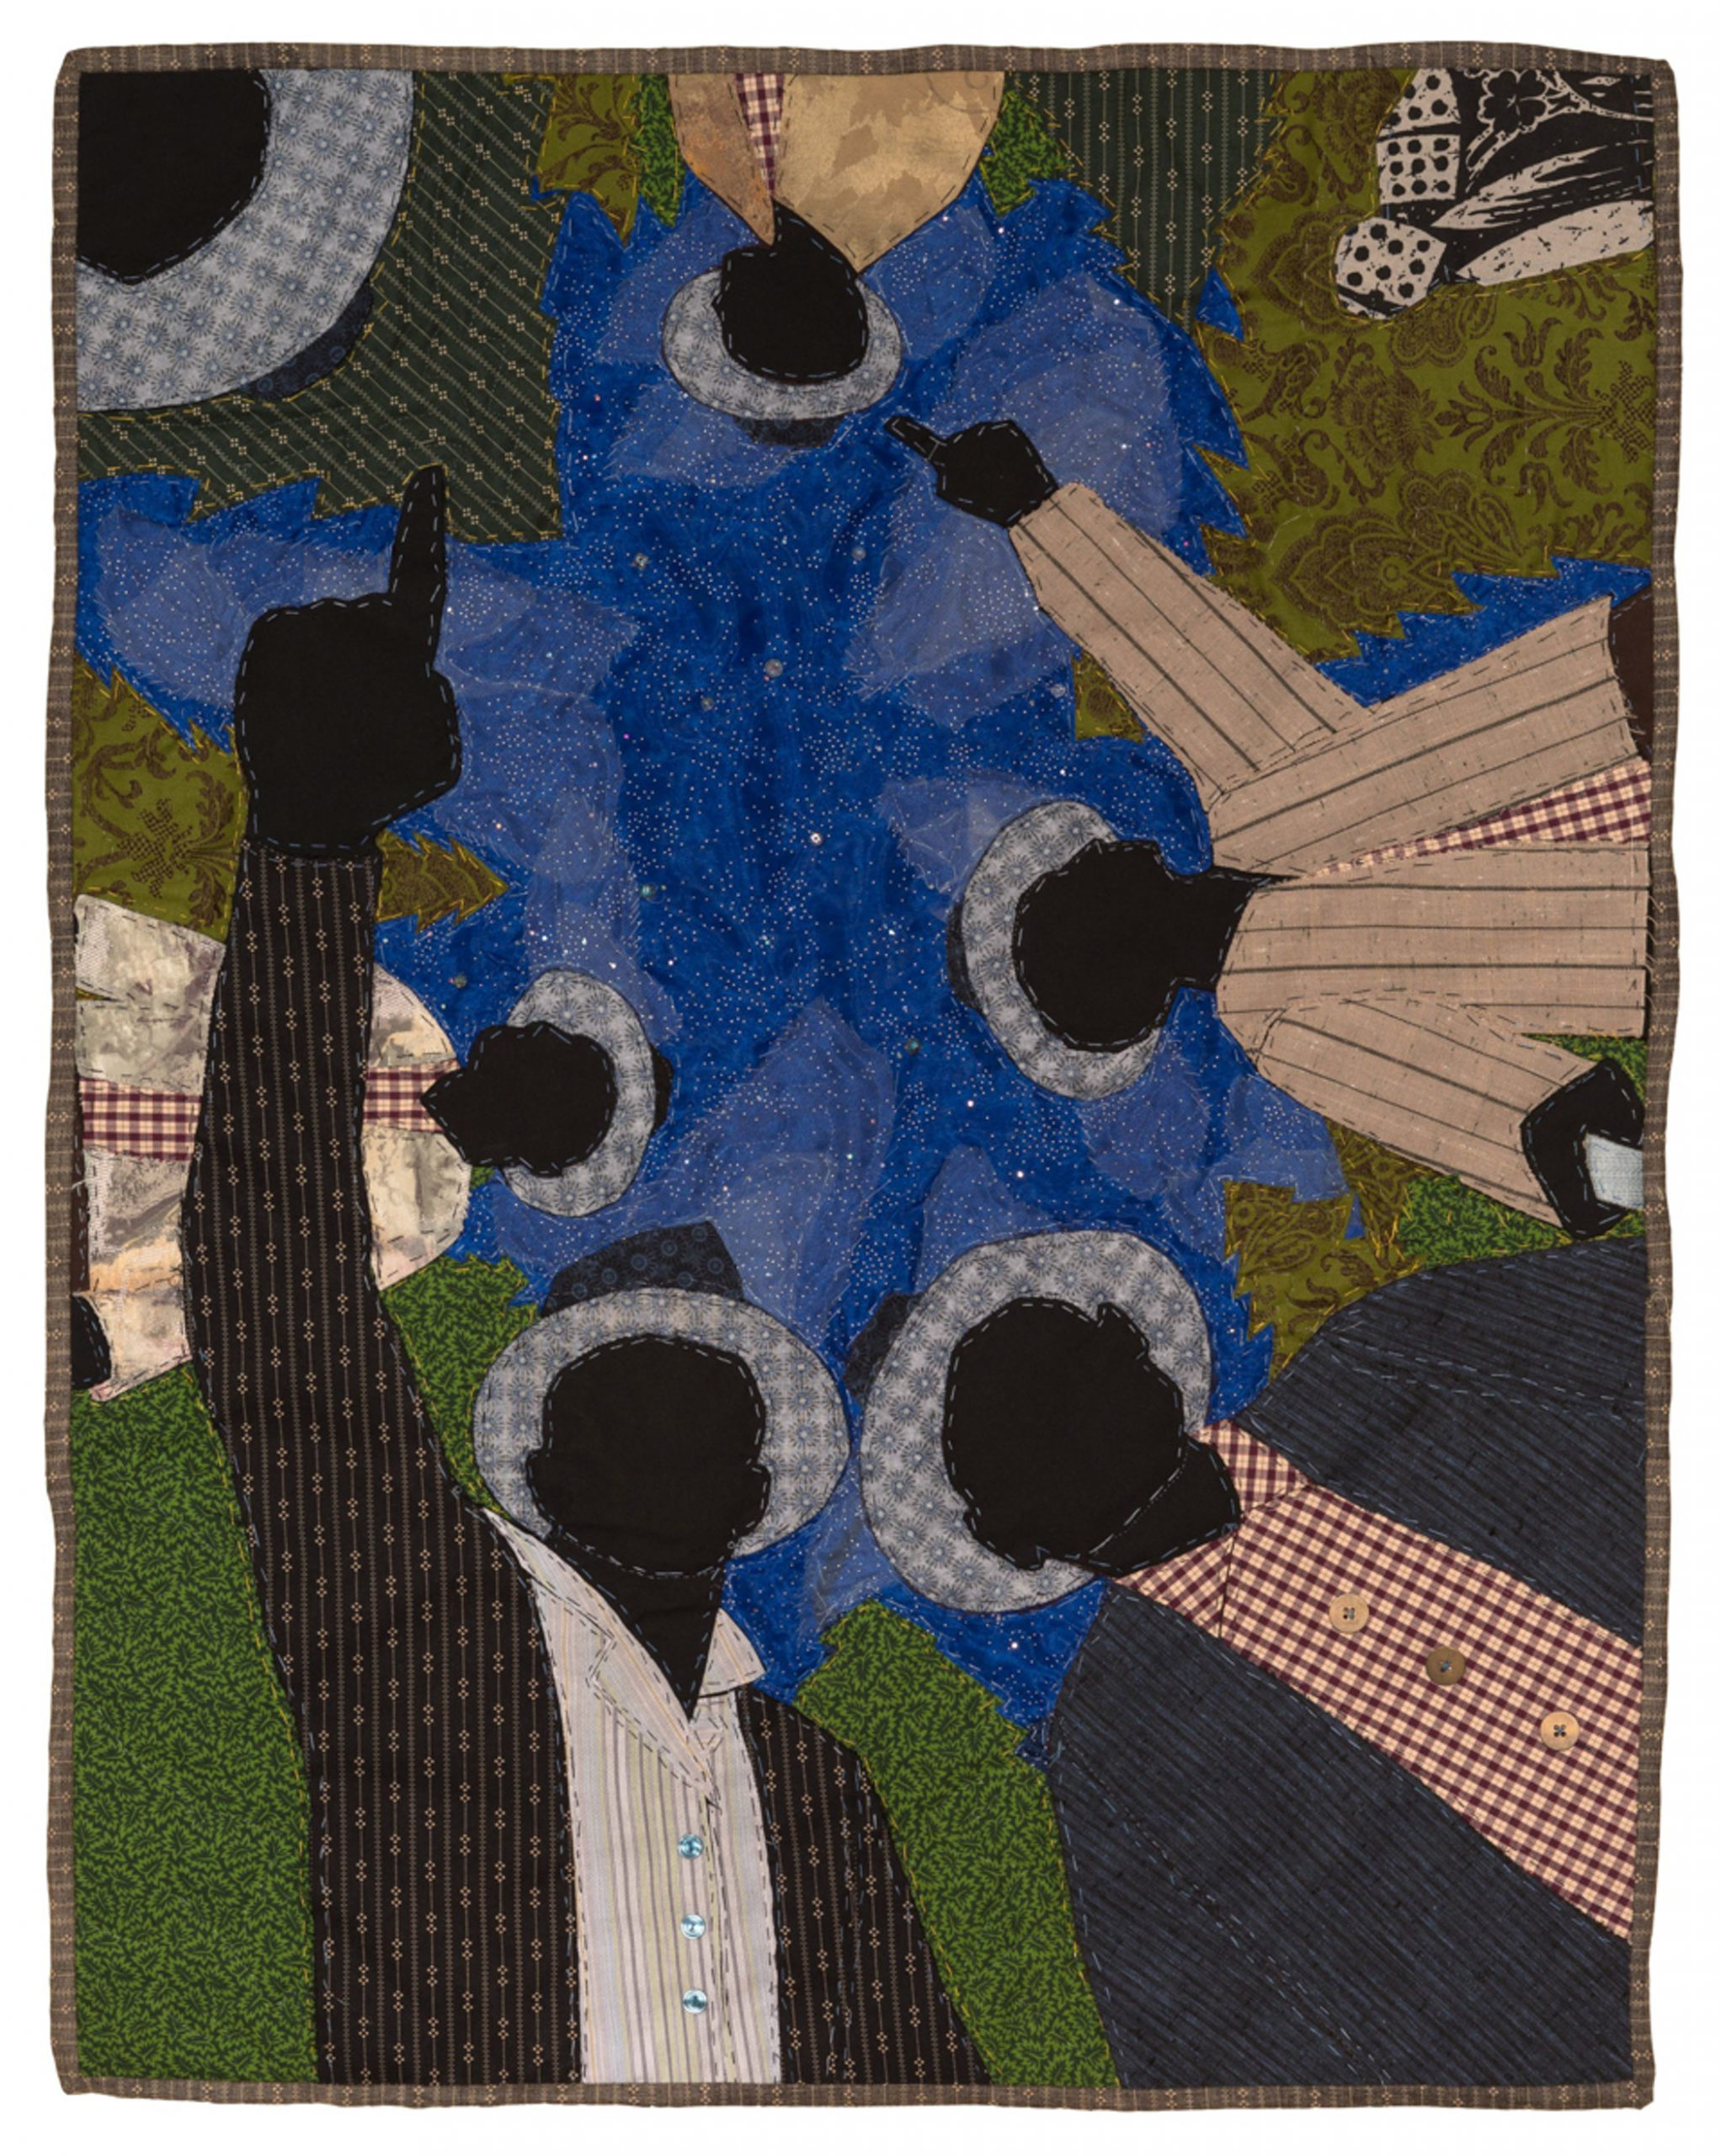 Stephen Towns, One Night at Cabin Pond, 2016.   #4 from the series Story Quilts. Natural and synthetic fabric, nylon tulle, polyester and cotton thread, Thermoweb, cotton/polyester blend batting, crystal glass beads, resin and metal buttons. 35 x 28 1/2 inches. Gift of Clair Zamoiski Segal in Honor of Christopher Bedford (BMA 2018.149).